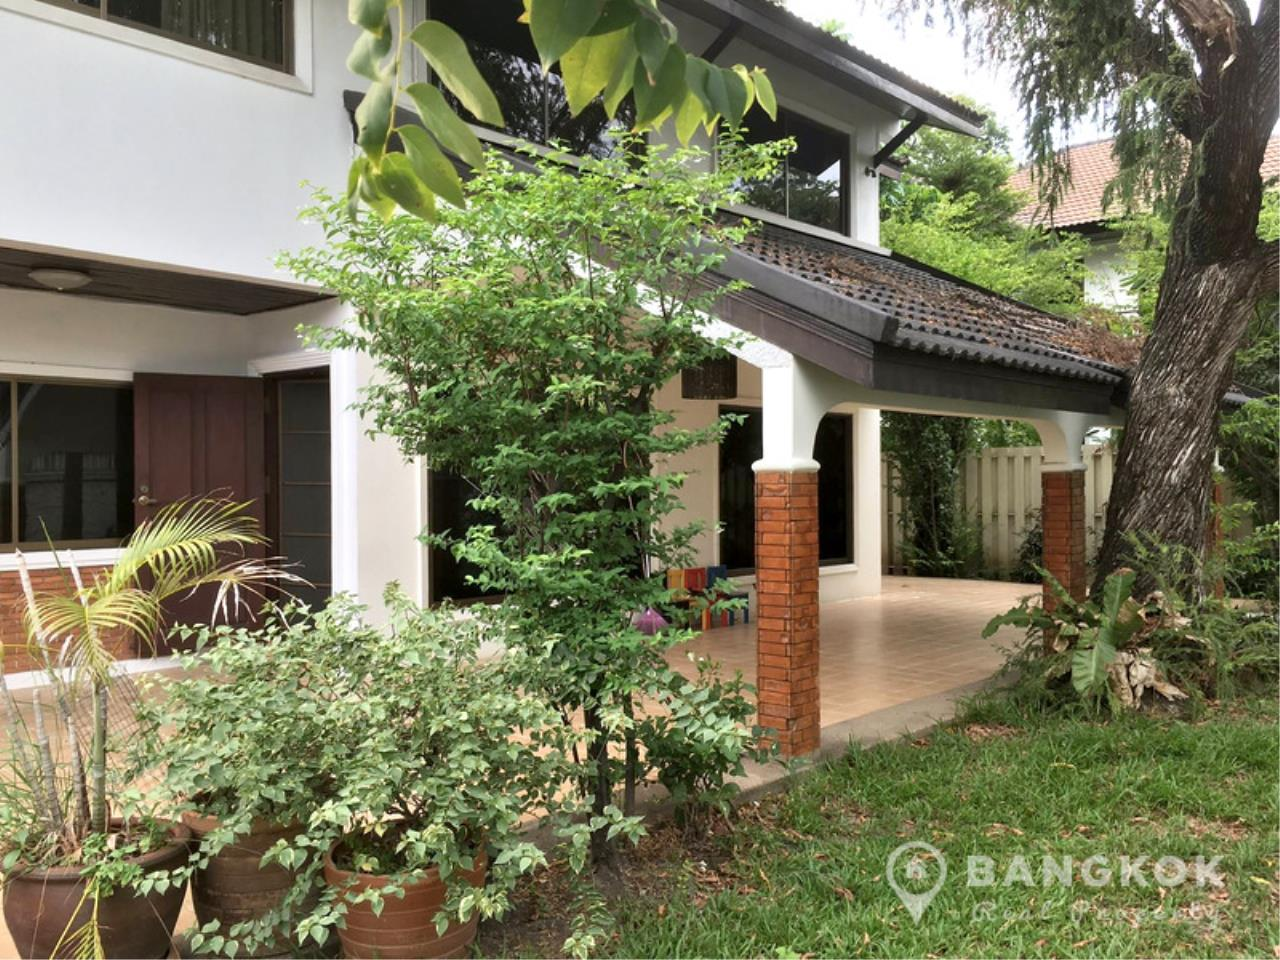 Bangkok Real Property Agency's Detached Spacious 3 Bed 3 Bath house with Garden in Thonglor  1